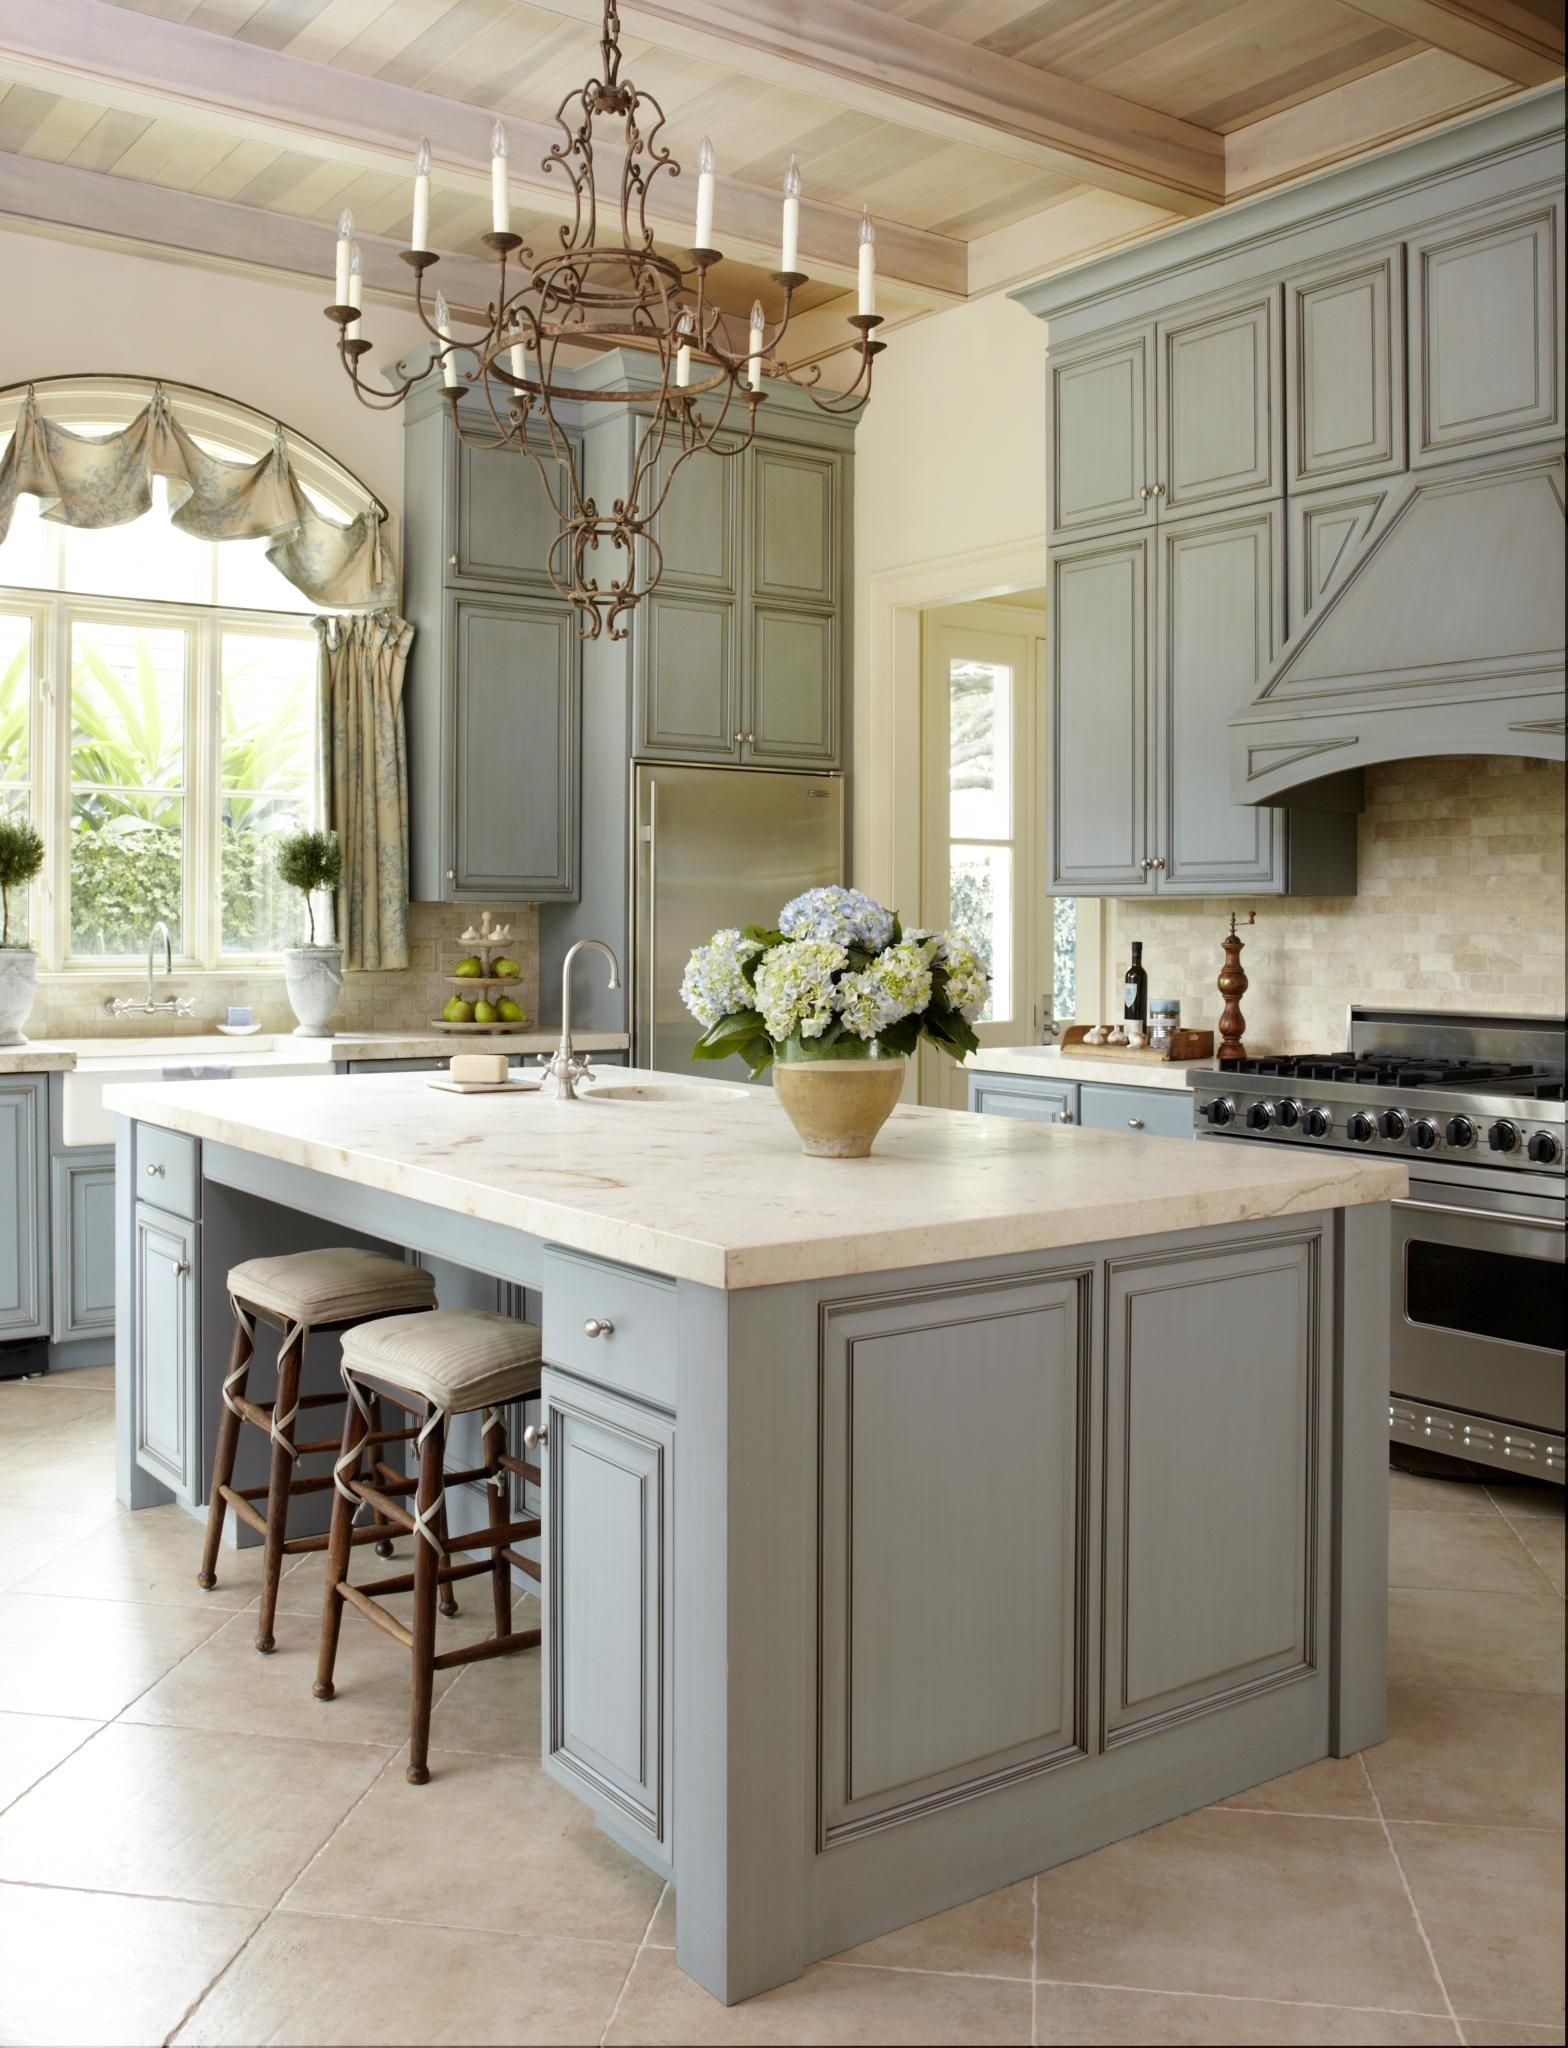 French Country Kitchens Charming Ideas French Country Decorating Ideas  French Country